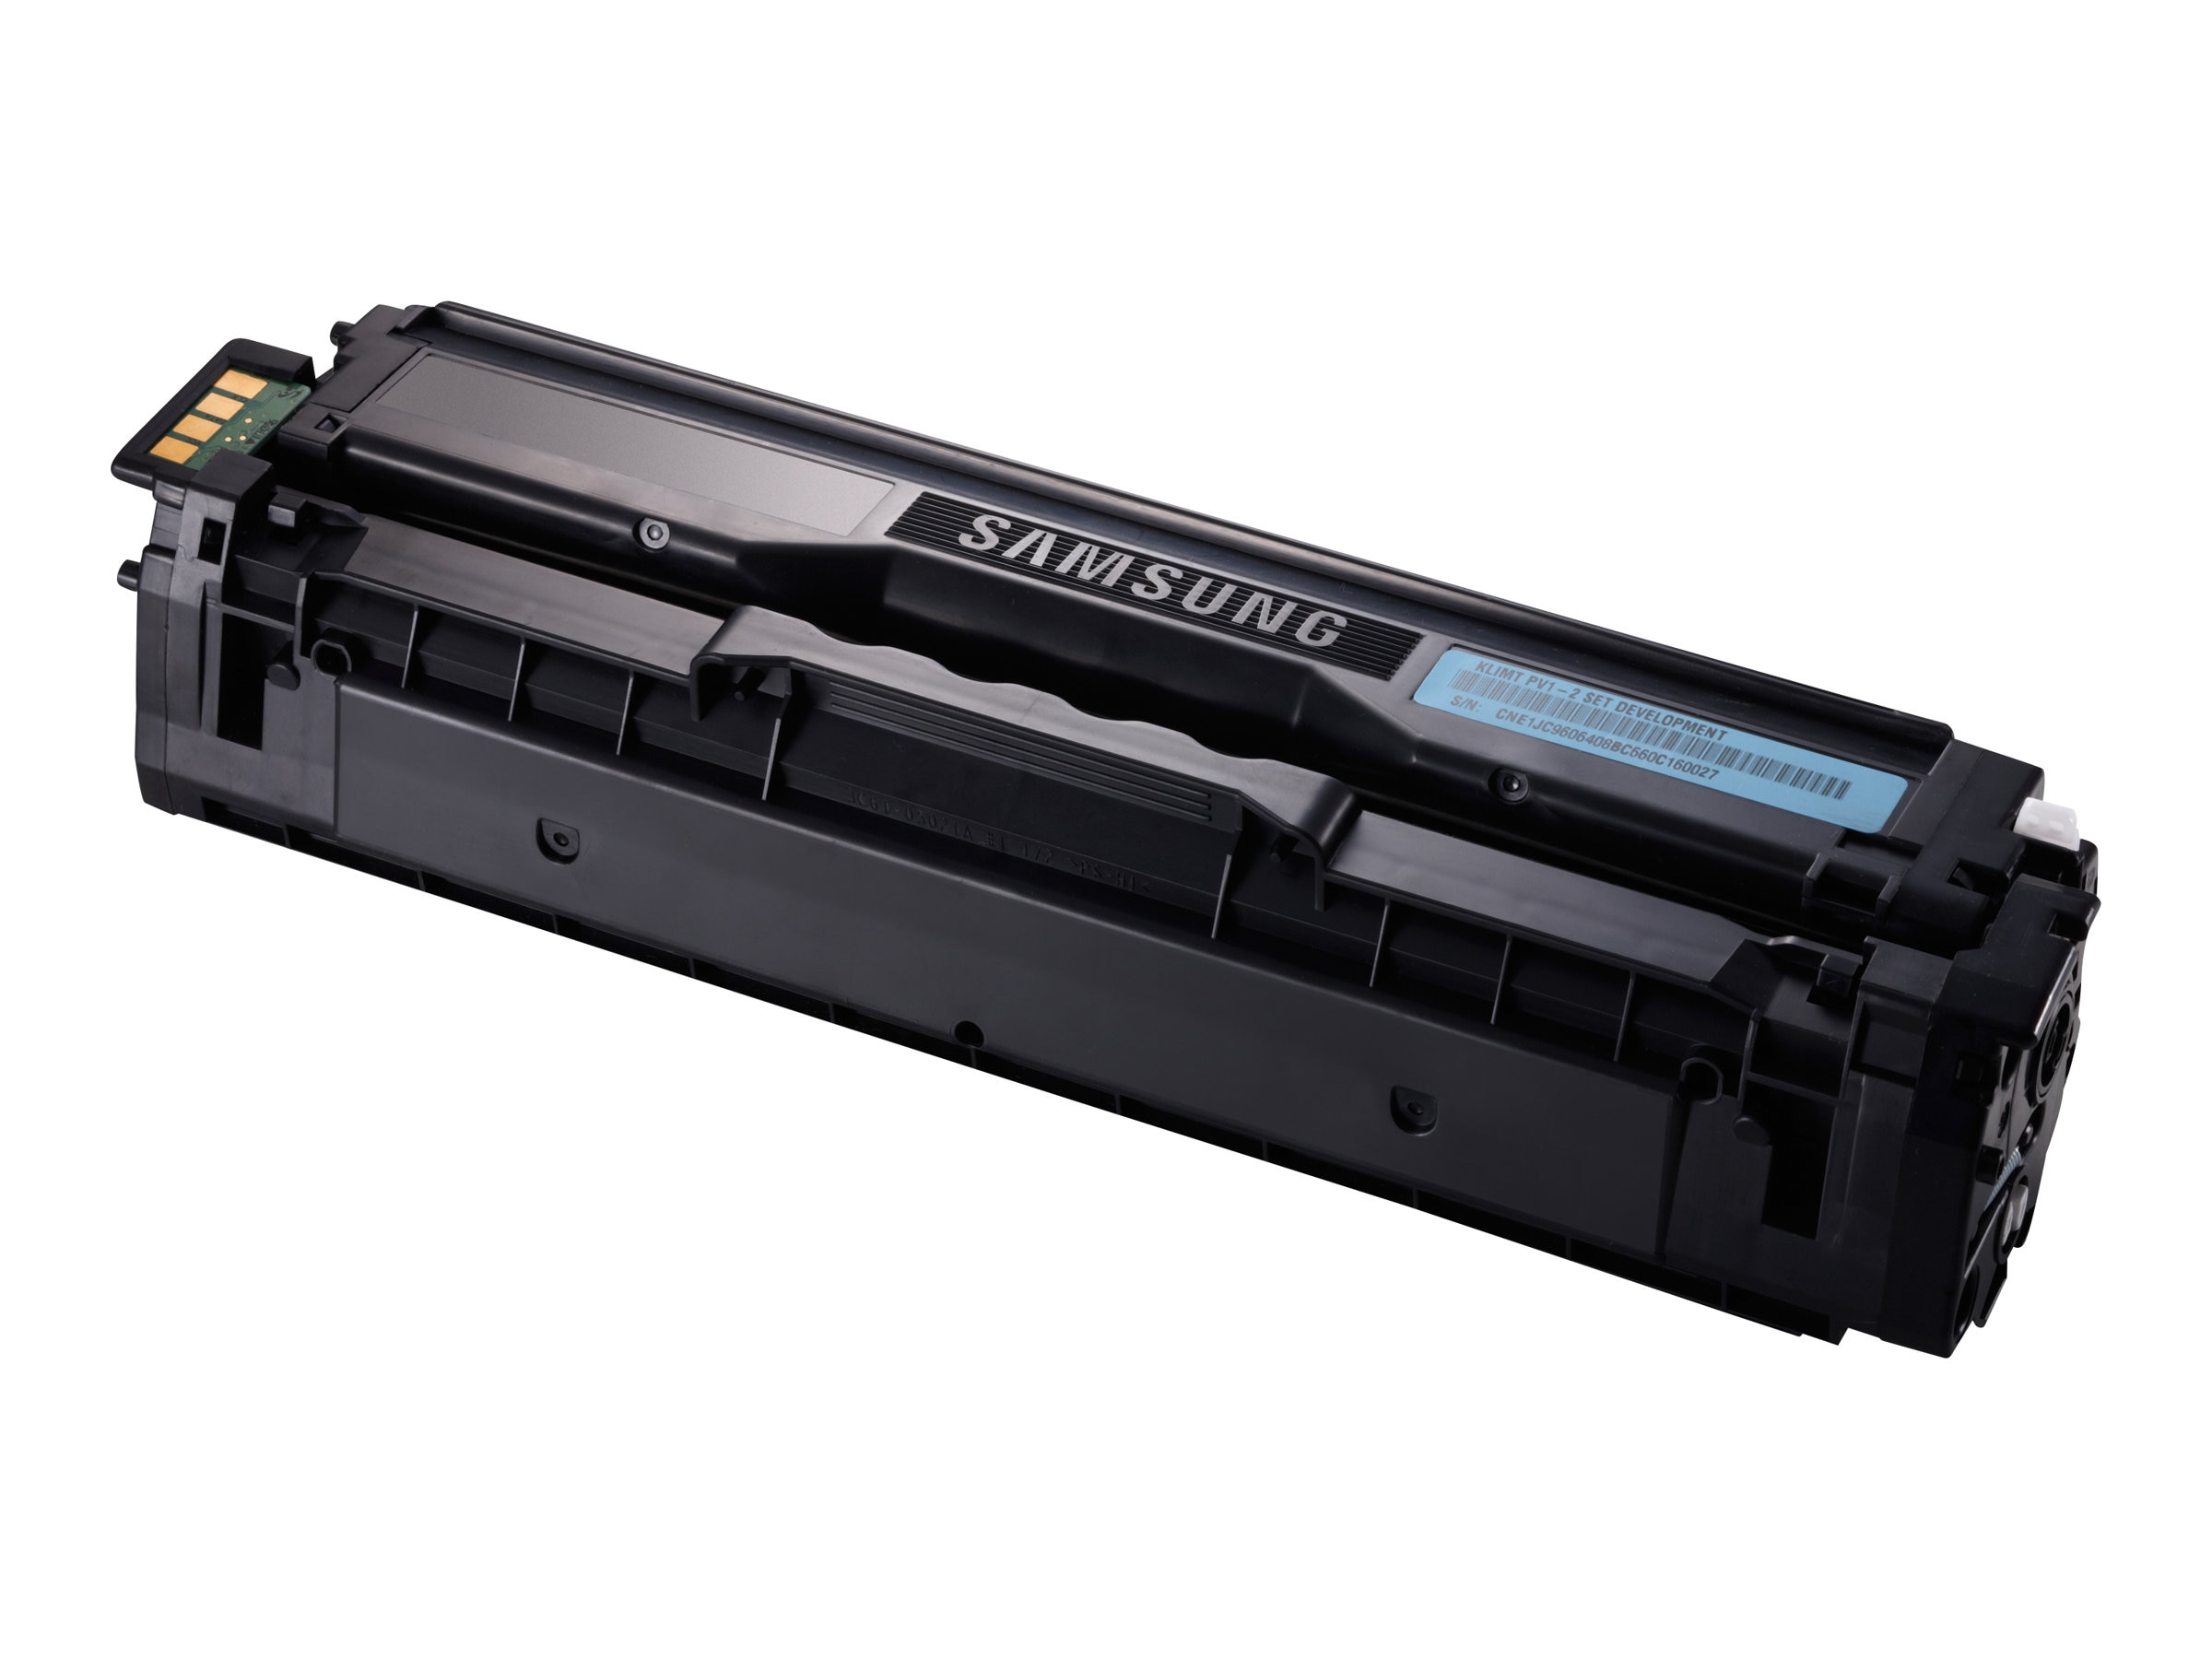 Samsung Cyan Toner Cartridge for CLP-415NW Color Laser Printer &  CLX-4195FW Color Multifunction Printer, CLT-C504S, 14481010, Toner and Imaging Components